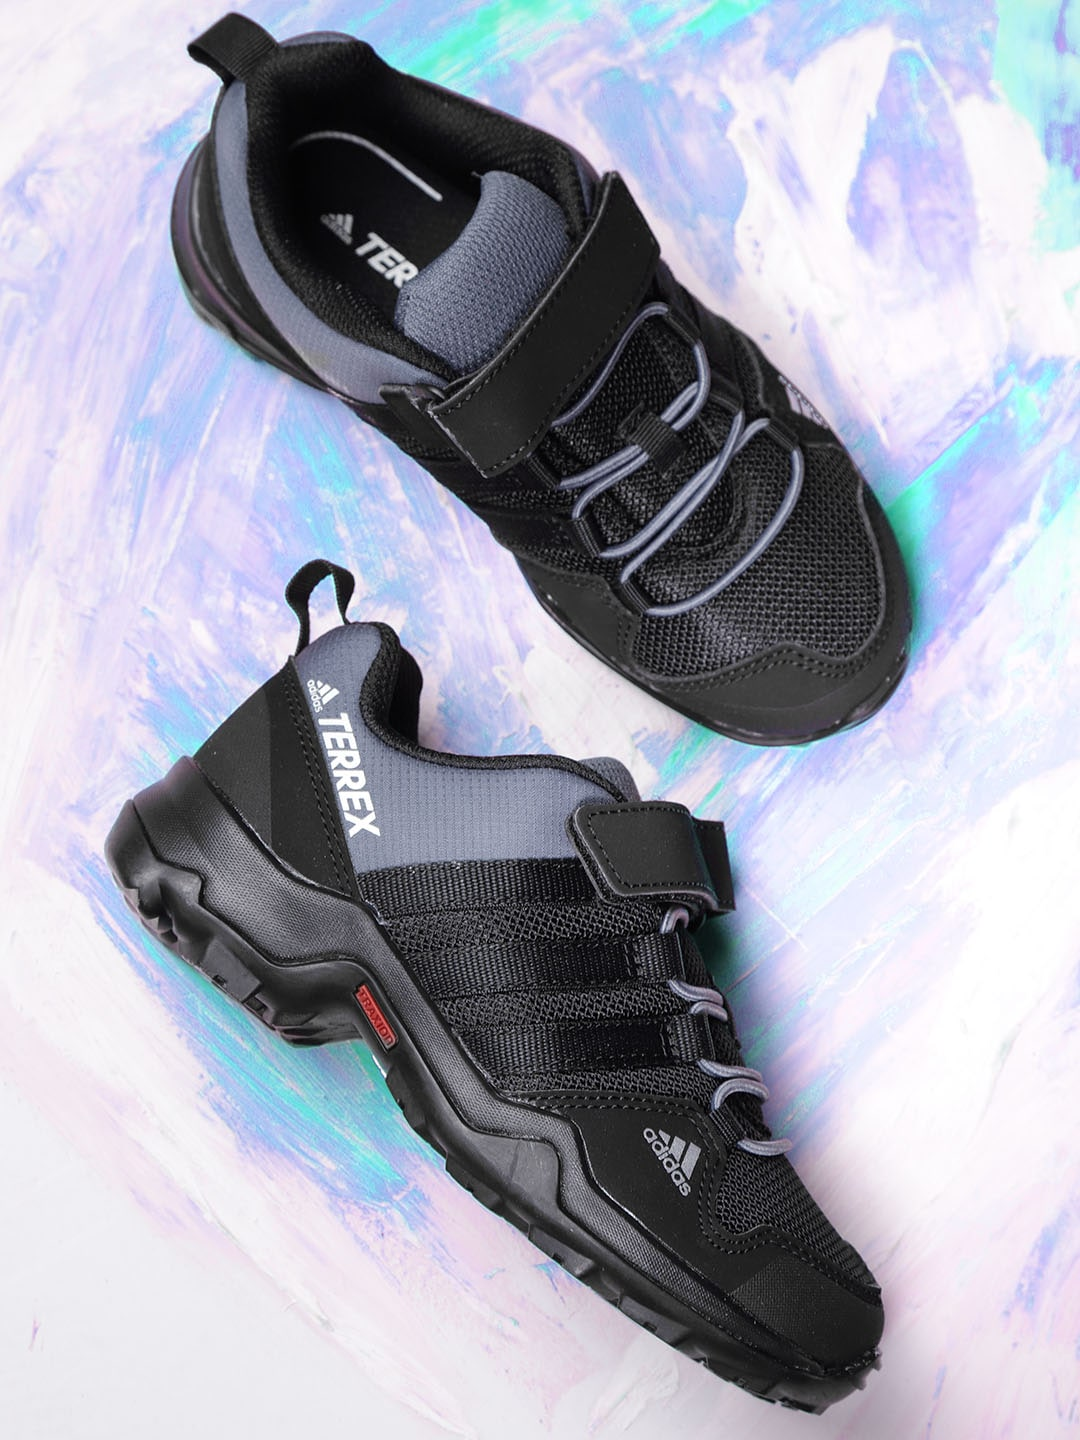 c3755c7b432288 Adidas Terrex Sports Shoes - Buy Adidas Terrex Sports Shoes online in India